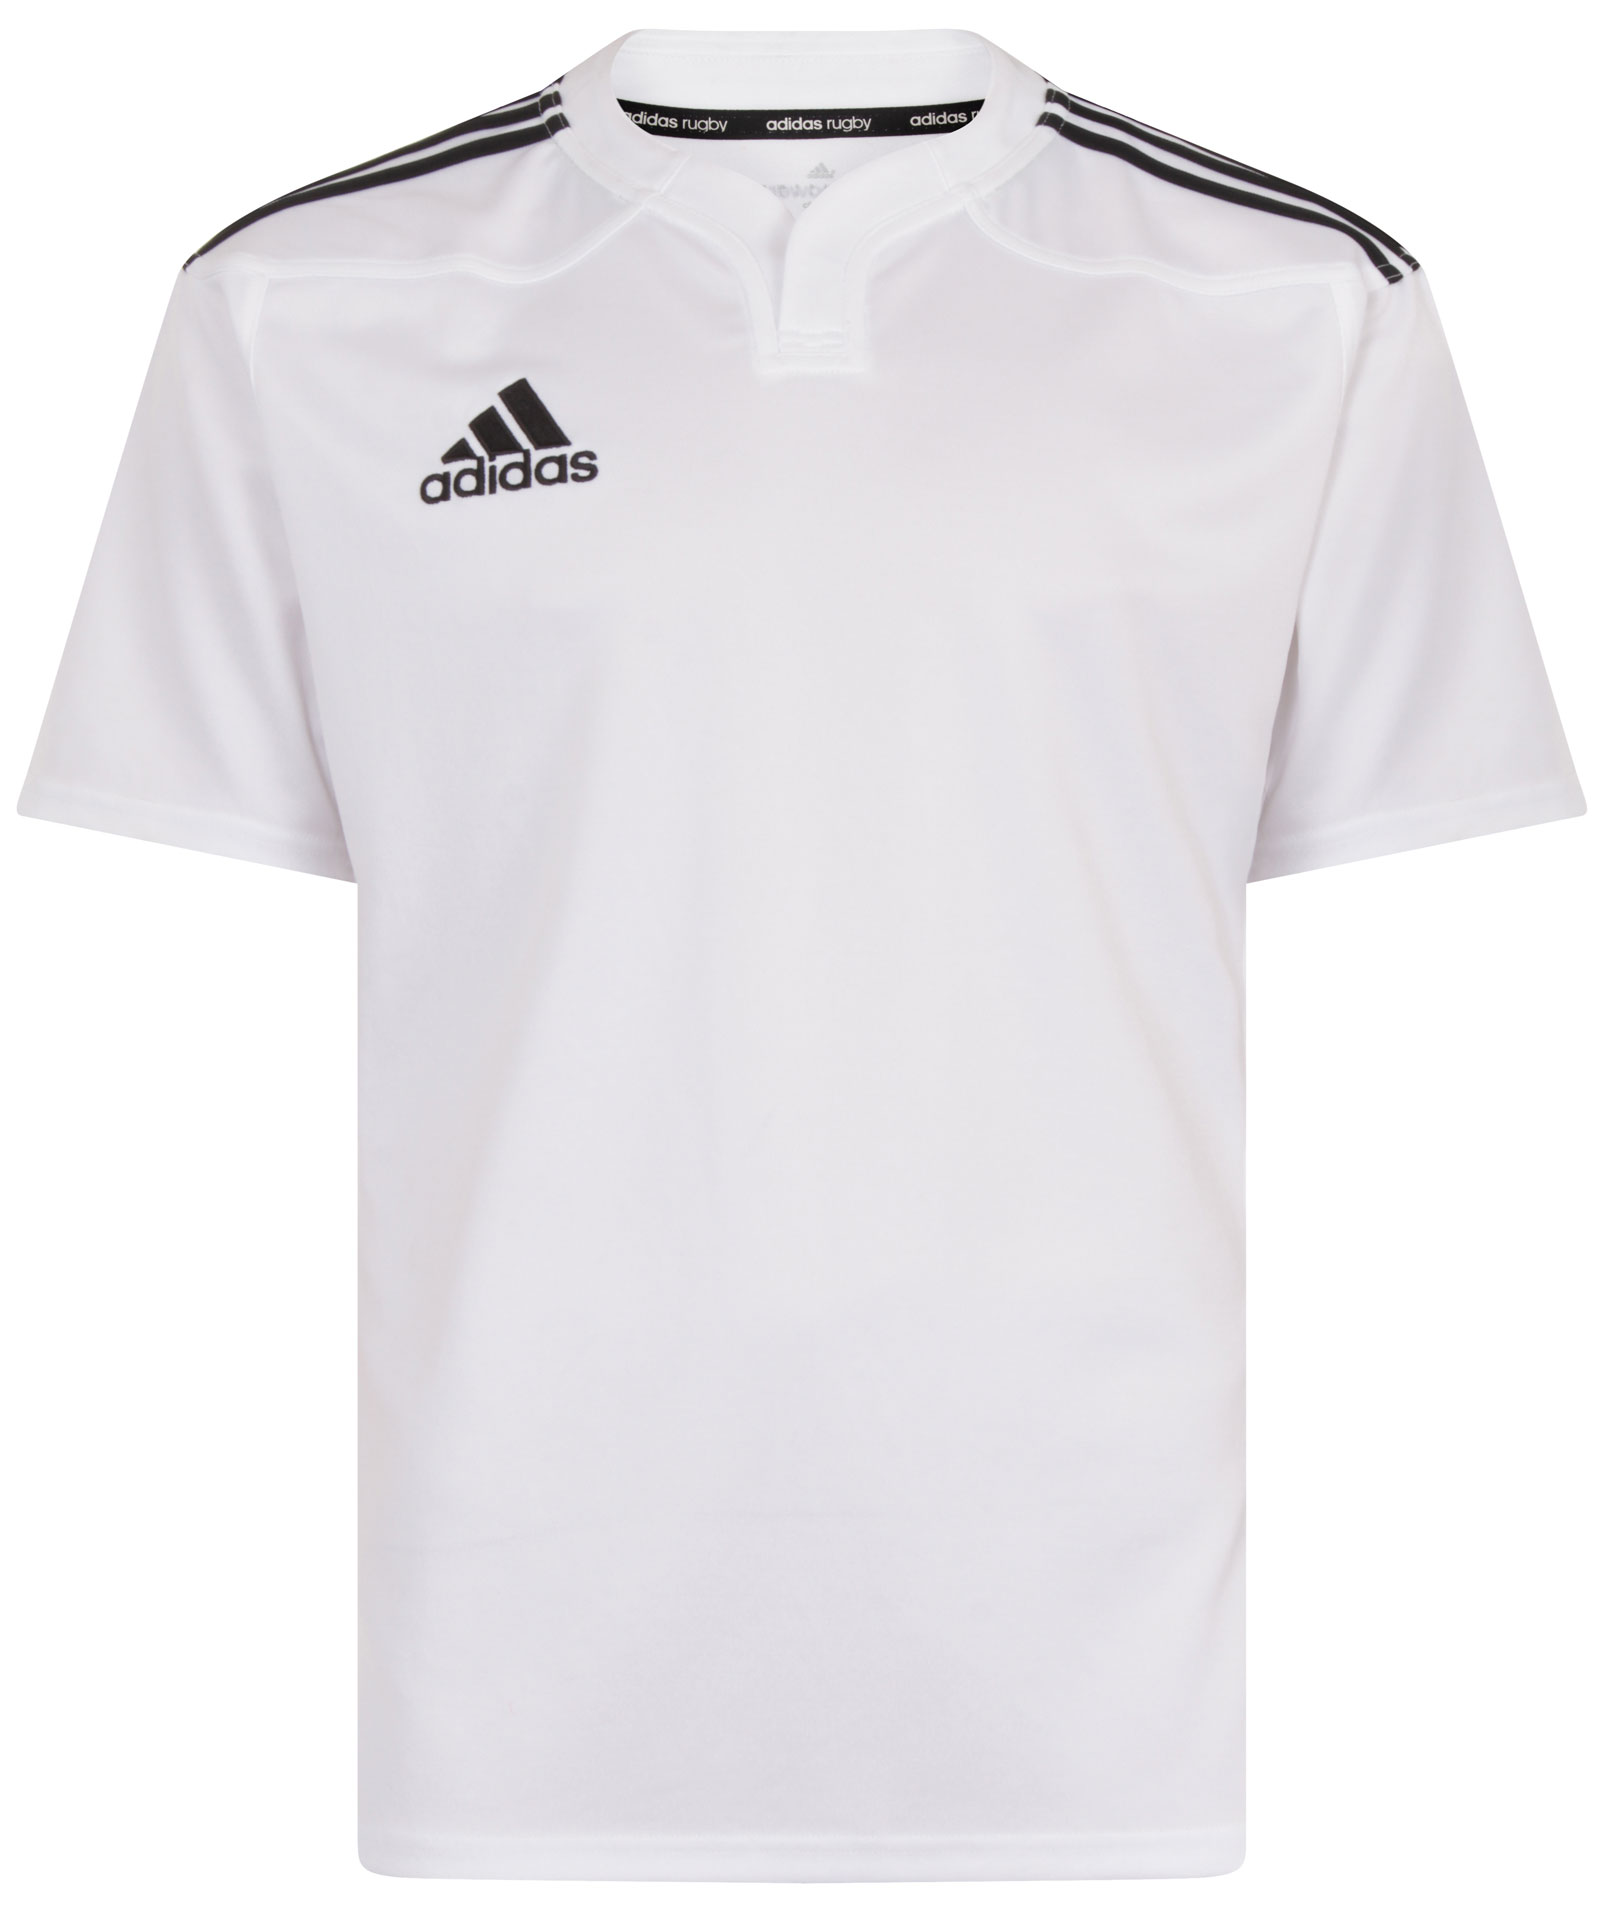 T shirt white ebay - New Adidas Tw 3s Mens Short Sleeve Rugby Training Jersey Top All Sizes